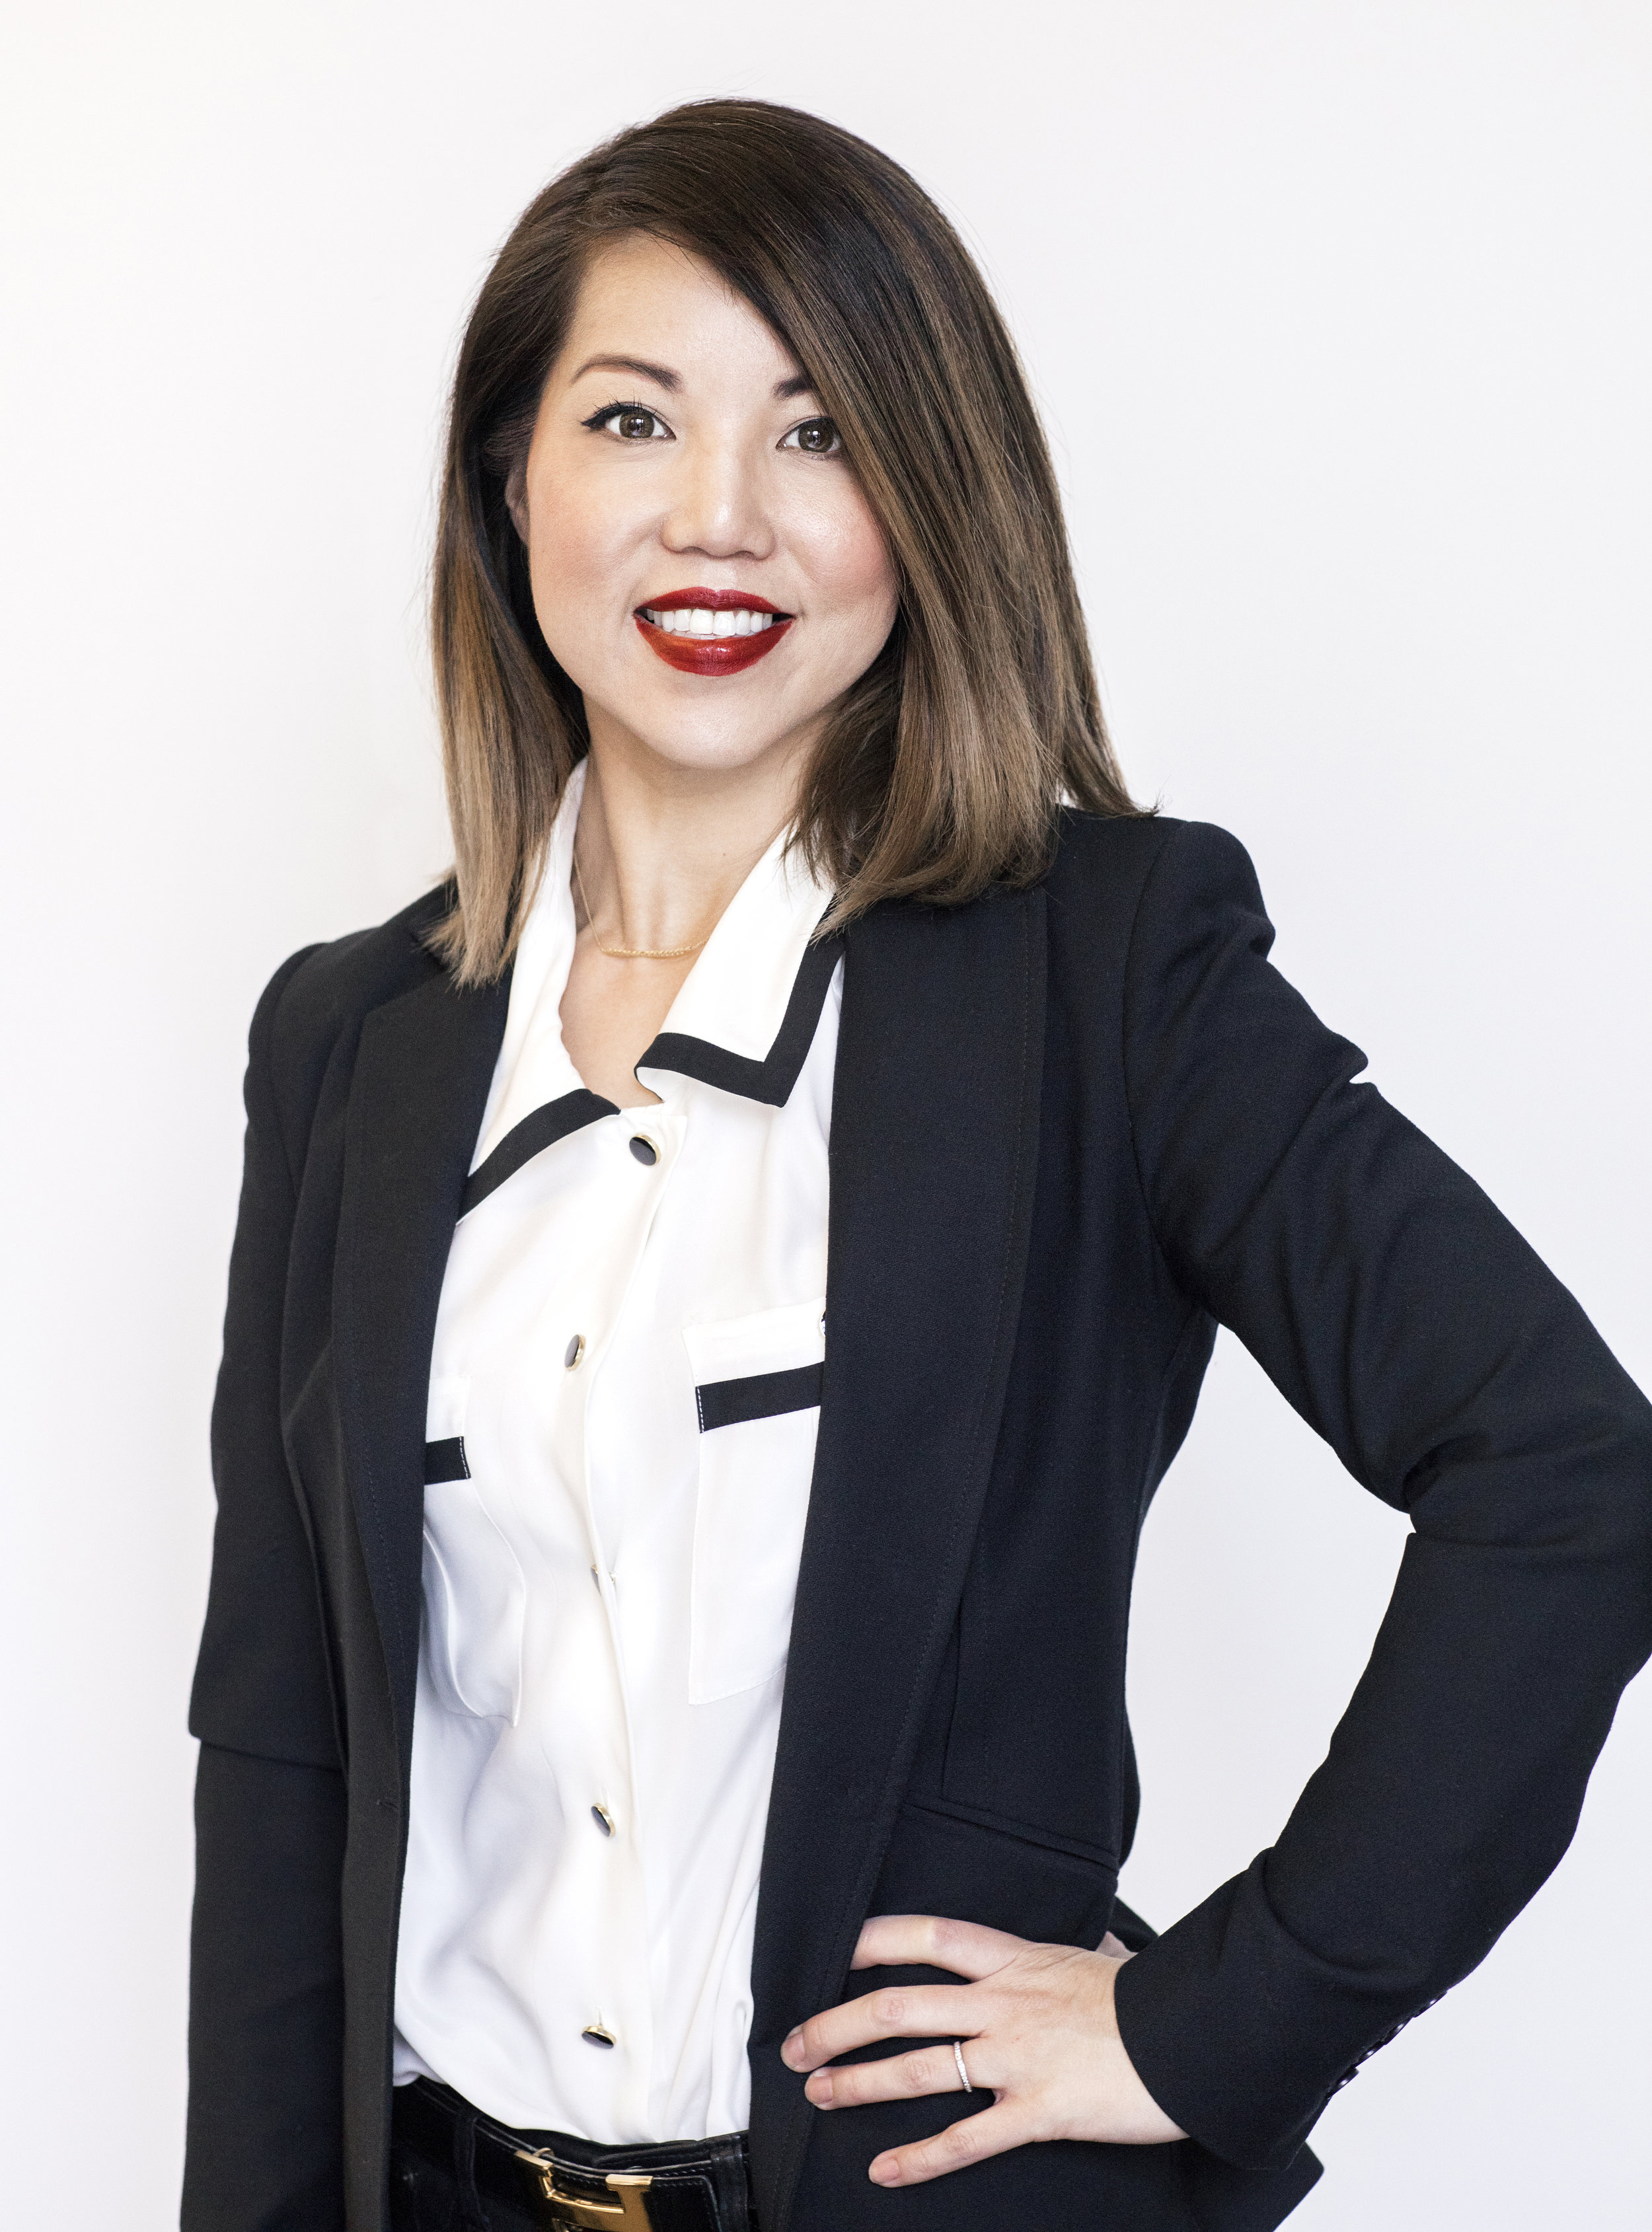 Elise Whang - fashion entrepreneur, CEO & co-founder of luxury goods brand LePrix (formerly SnobSwap)